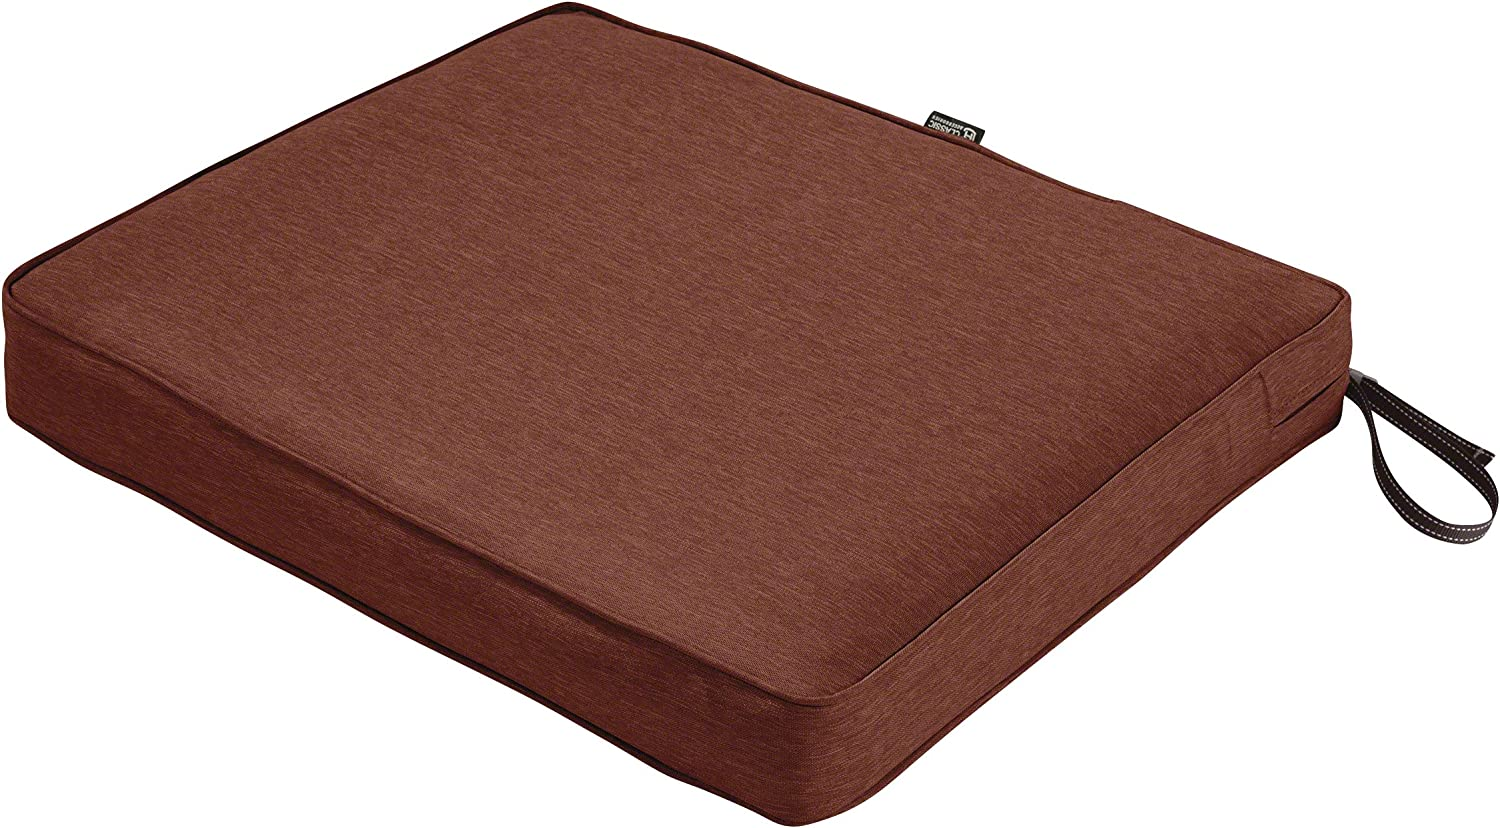 Classic Accessories Montlake Water-Resistant 21 x 19 x 3 Inch Rectangle Outdoor Seat Cushion, Patio Furniture Chair Cushion, Heather Henna Red